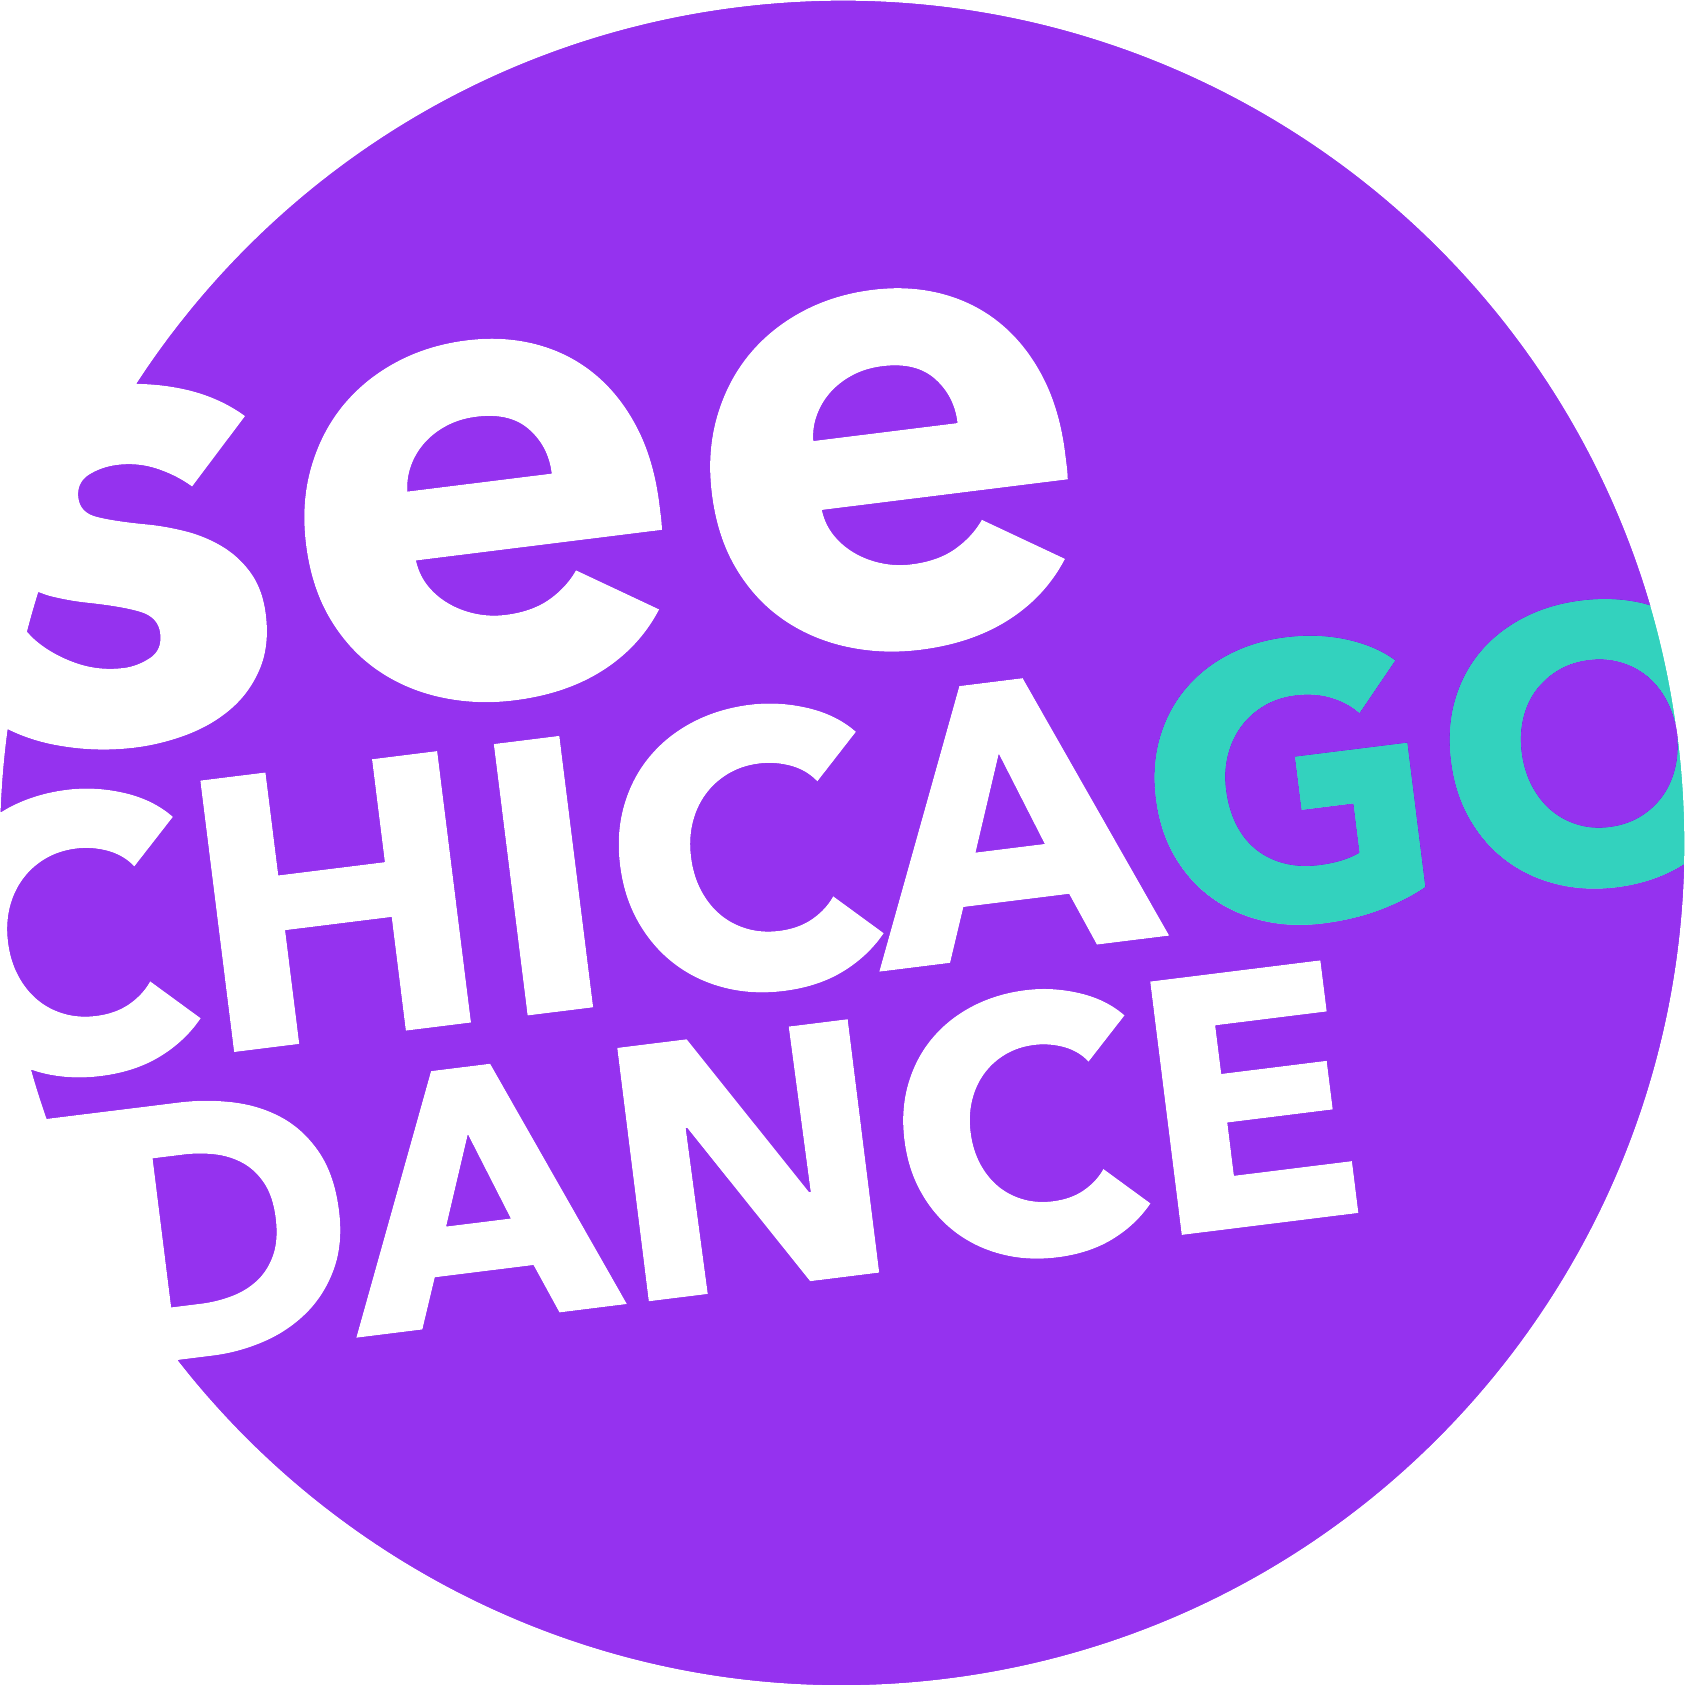 We are a proud member and friend of See Chicago Dance -